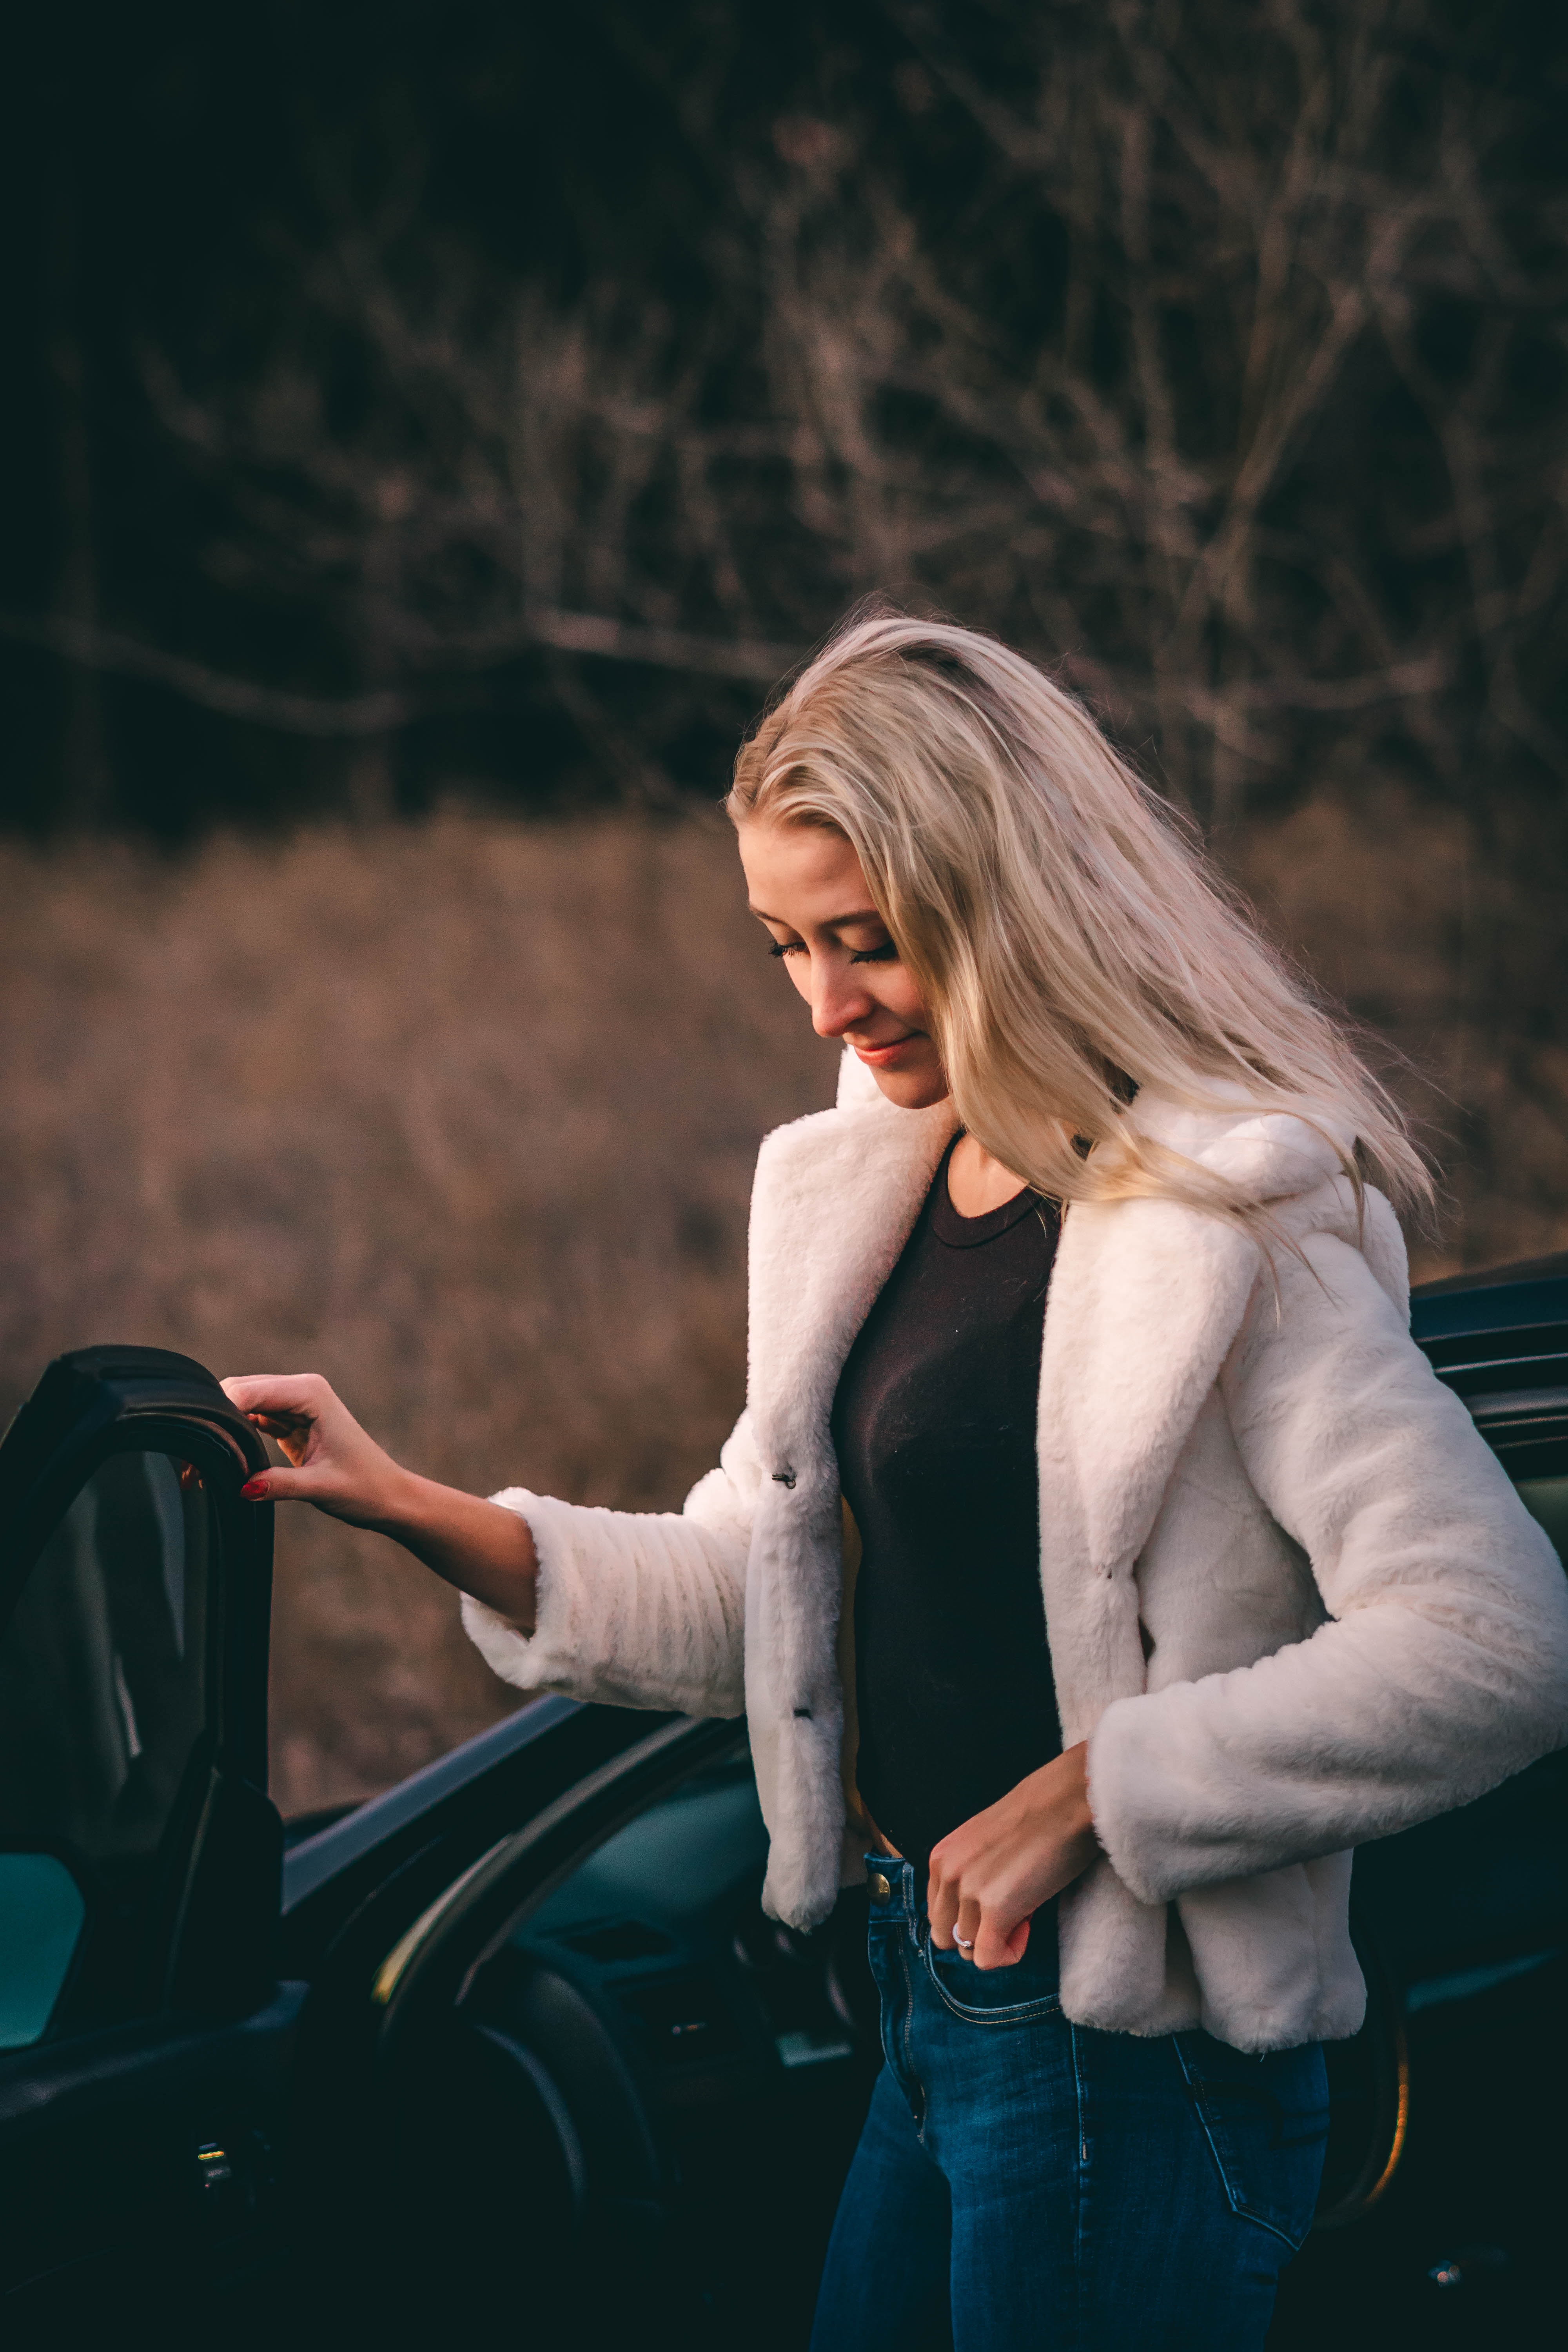 woman standing beside car near bare trees during golden hour